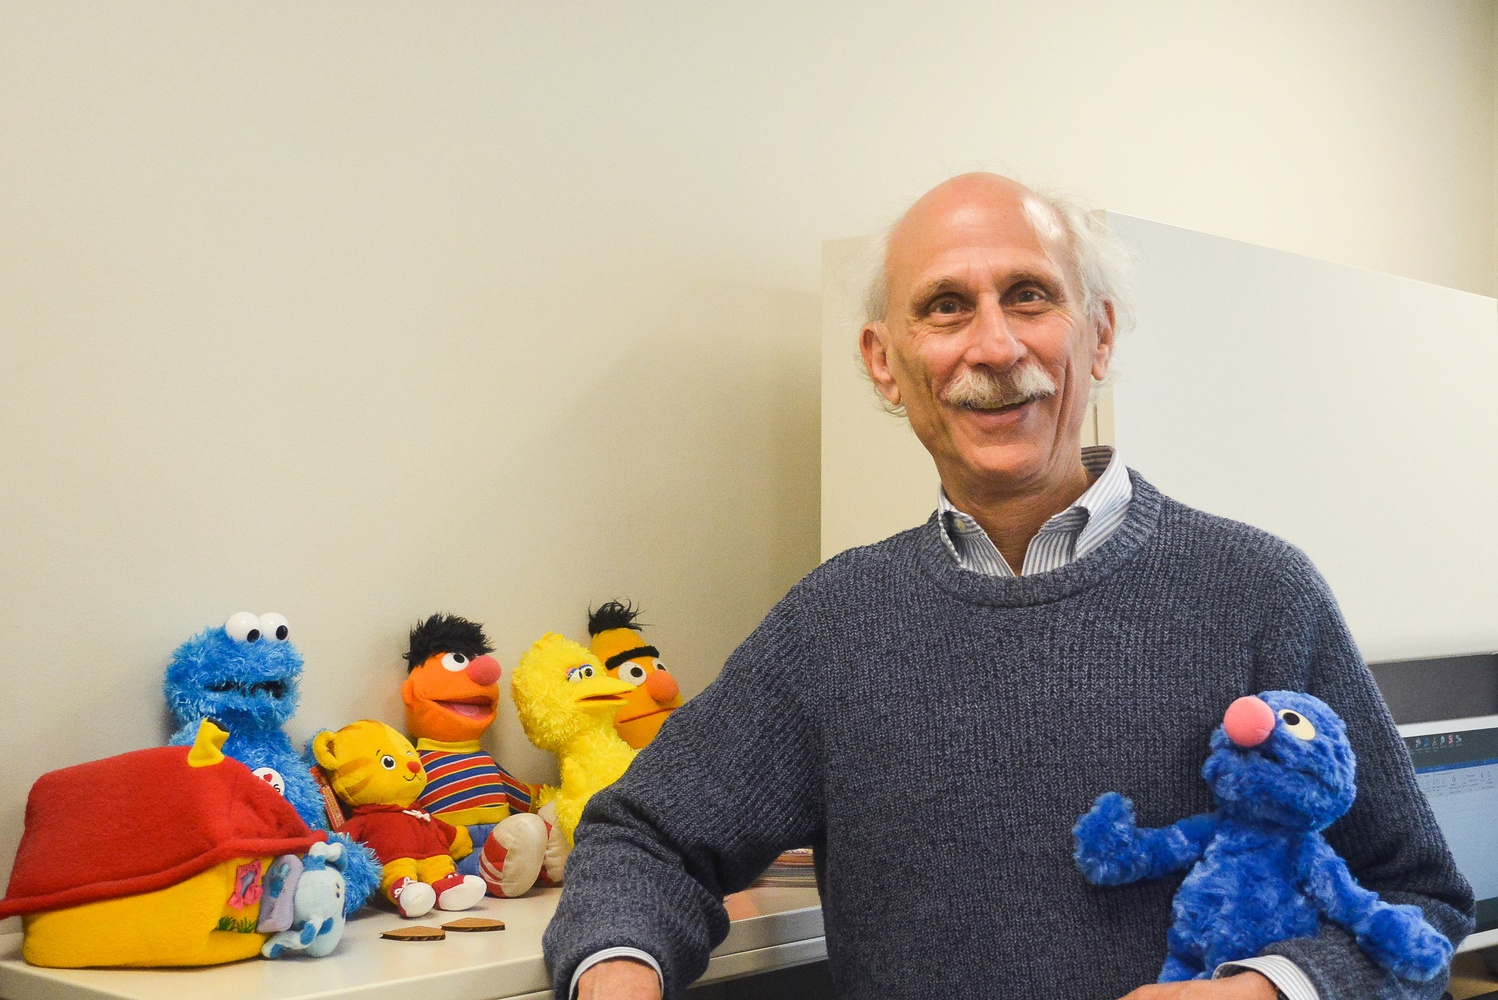 Harvard Graduate School of Education lecturer Joseph Blatt keeps a collection of muppets on the bookshelves in his office.